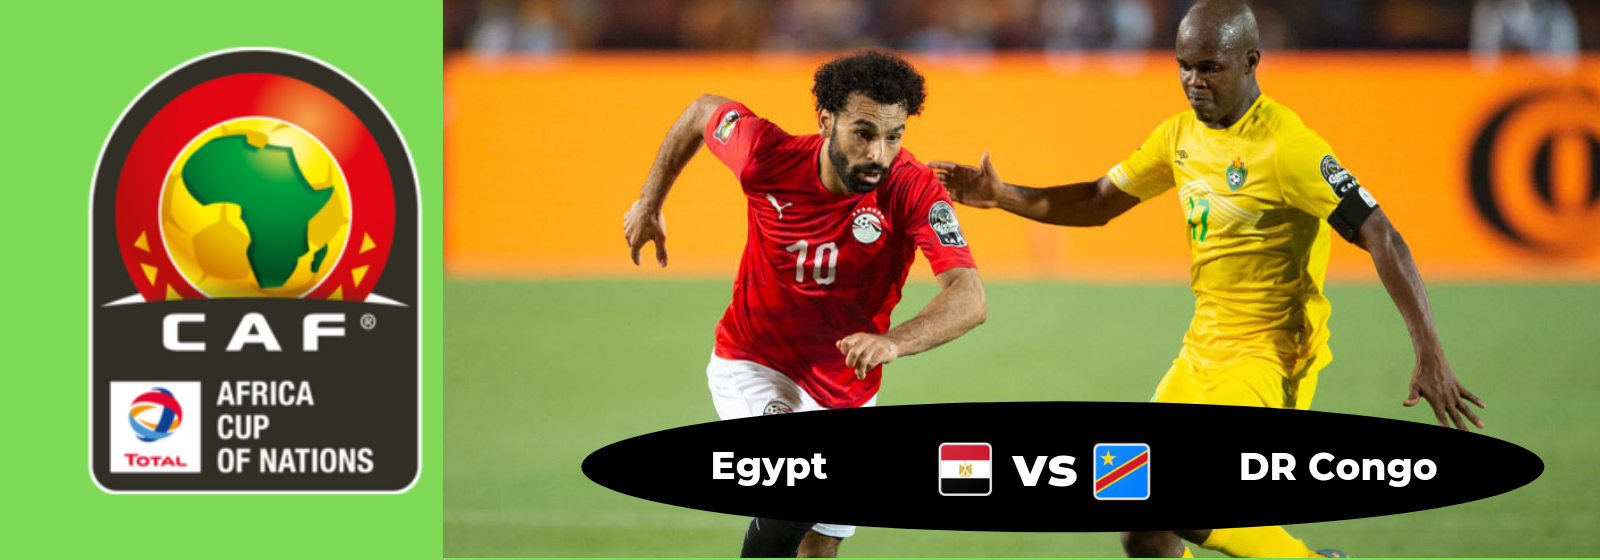 Africa Cup of Nations Egypt Vs. DR Congo Asian Connect